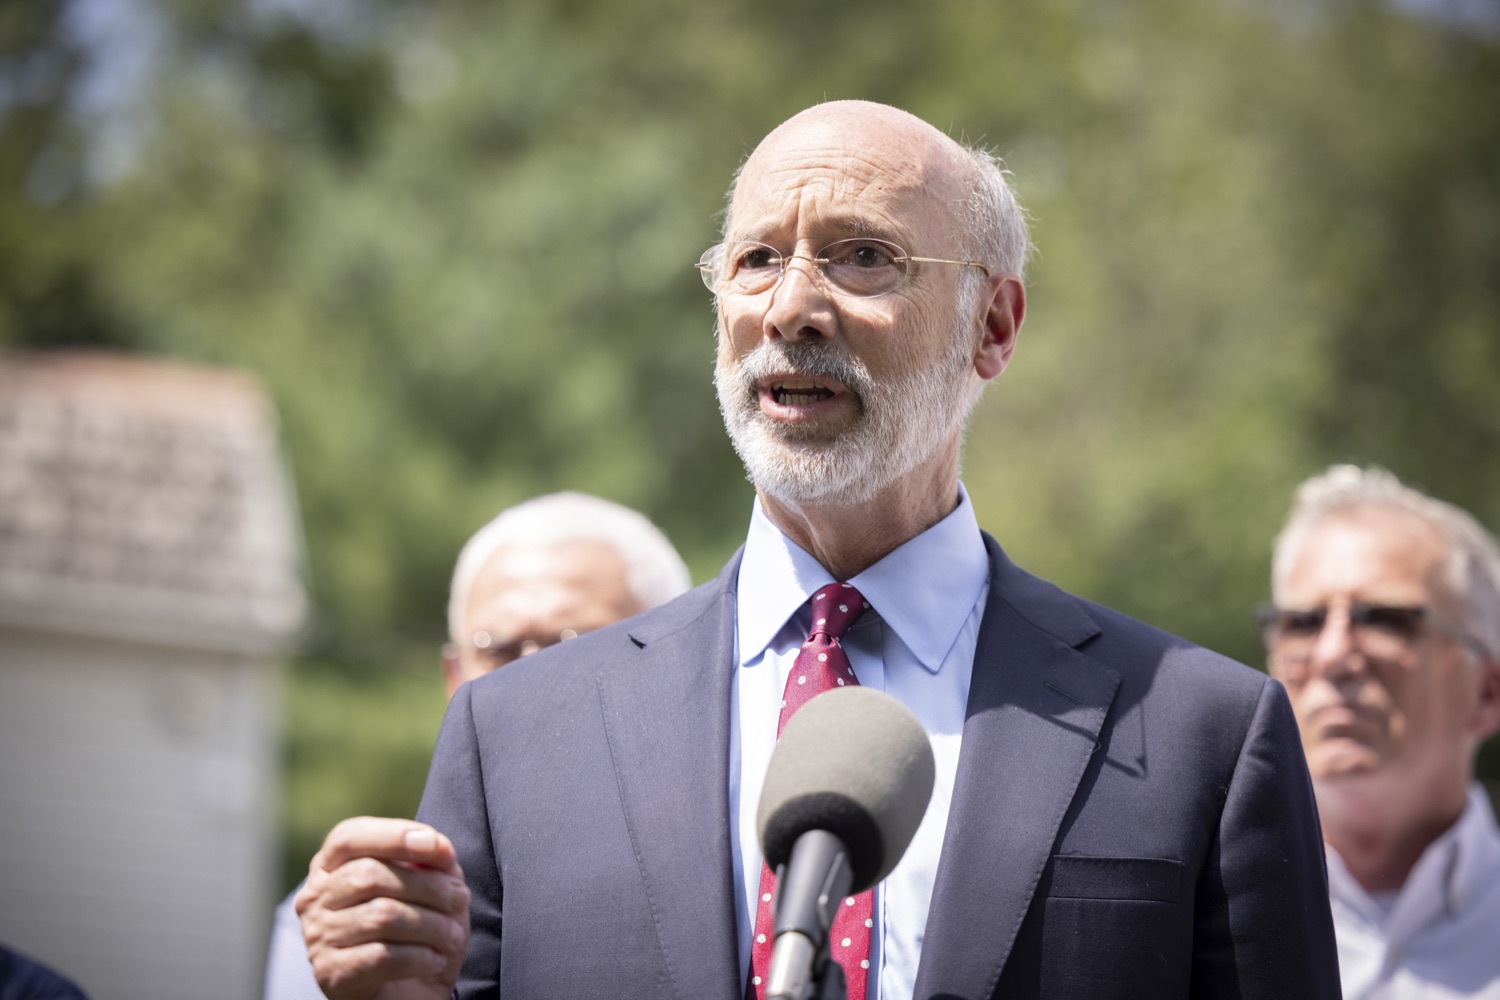 """<a href=""""https://filesource.wostreaming.net/commonwealthofpa/photo/18934_gov_stormdamage_dz_005.jpg"""" target=""""_blank"""">⇣Download Photo<br></a>Pennsylvania Governor Tom Wolf speaking with the press.Governor Tom Wolf visited Bristol and Andalusia in Bucks County to tour communities affected by severe weather and flash flooding. The governor was joined by local officials and legislators to visit damaged homes and speak to residents. JULY 16, 2021 - ANDALUSIA, PA"""